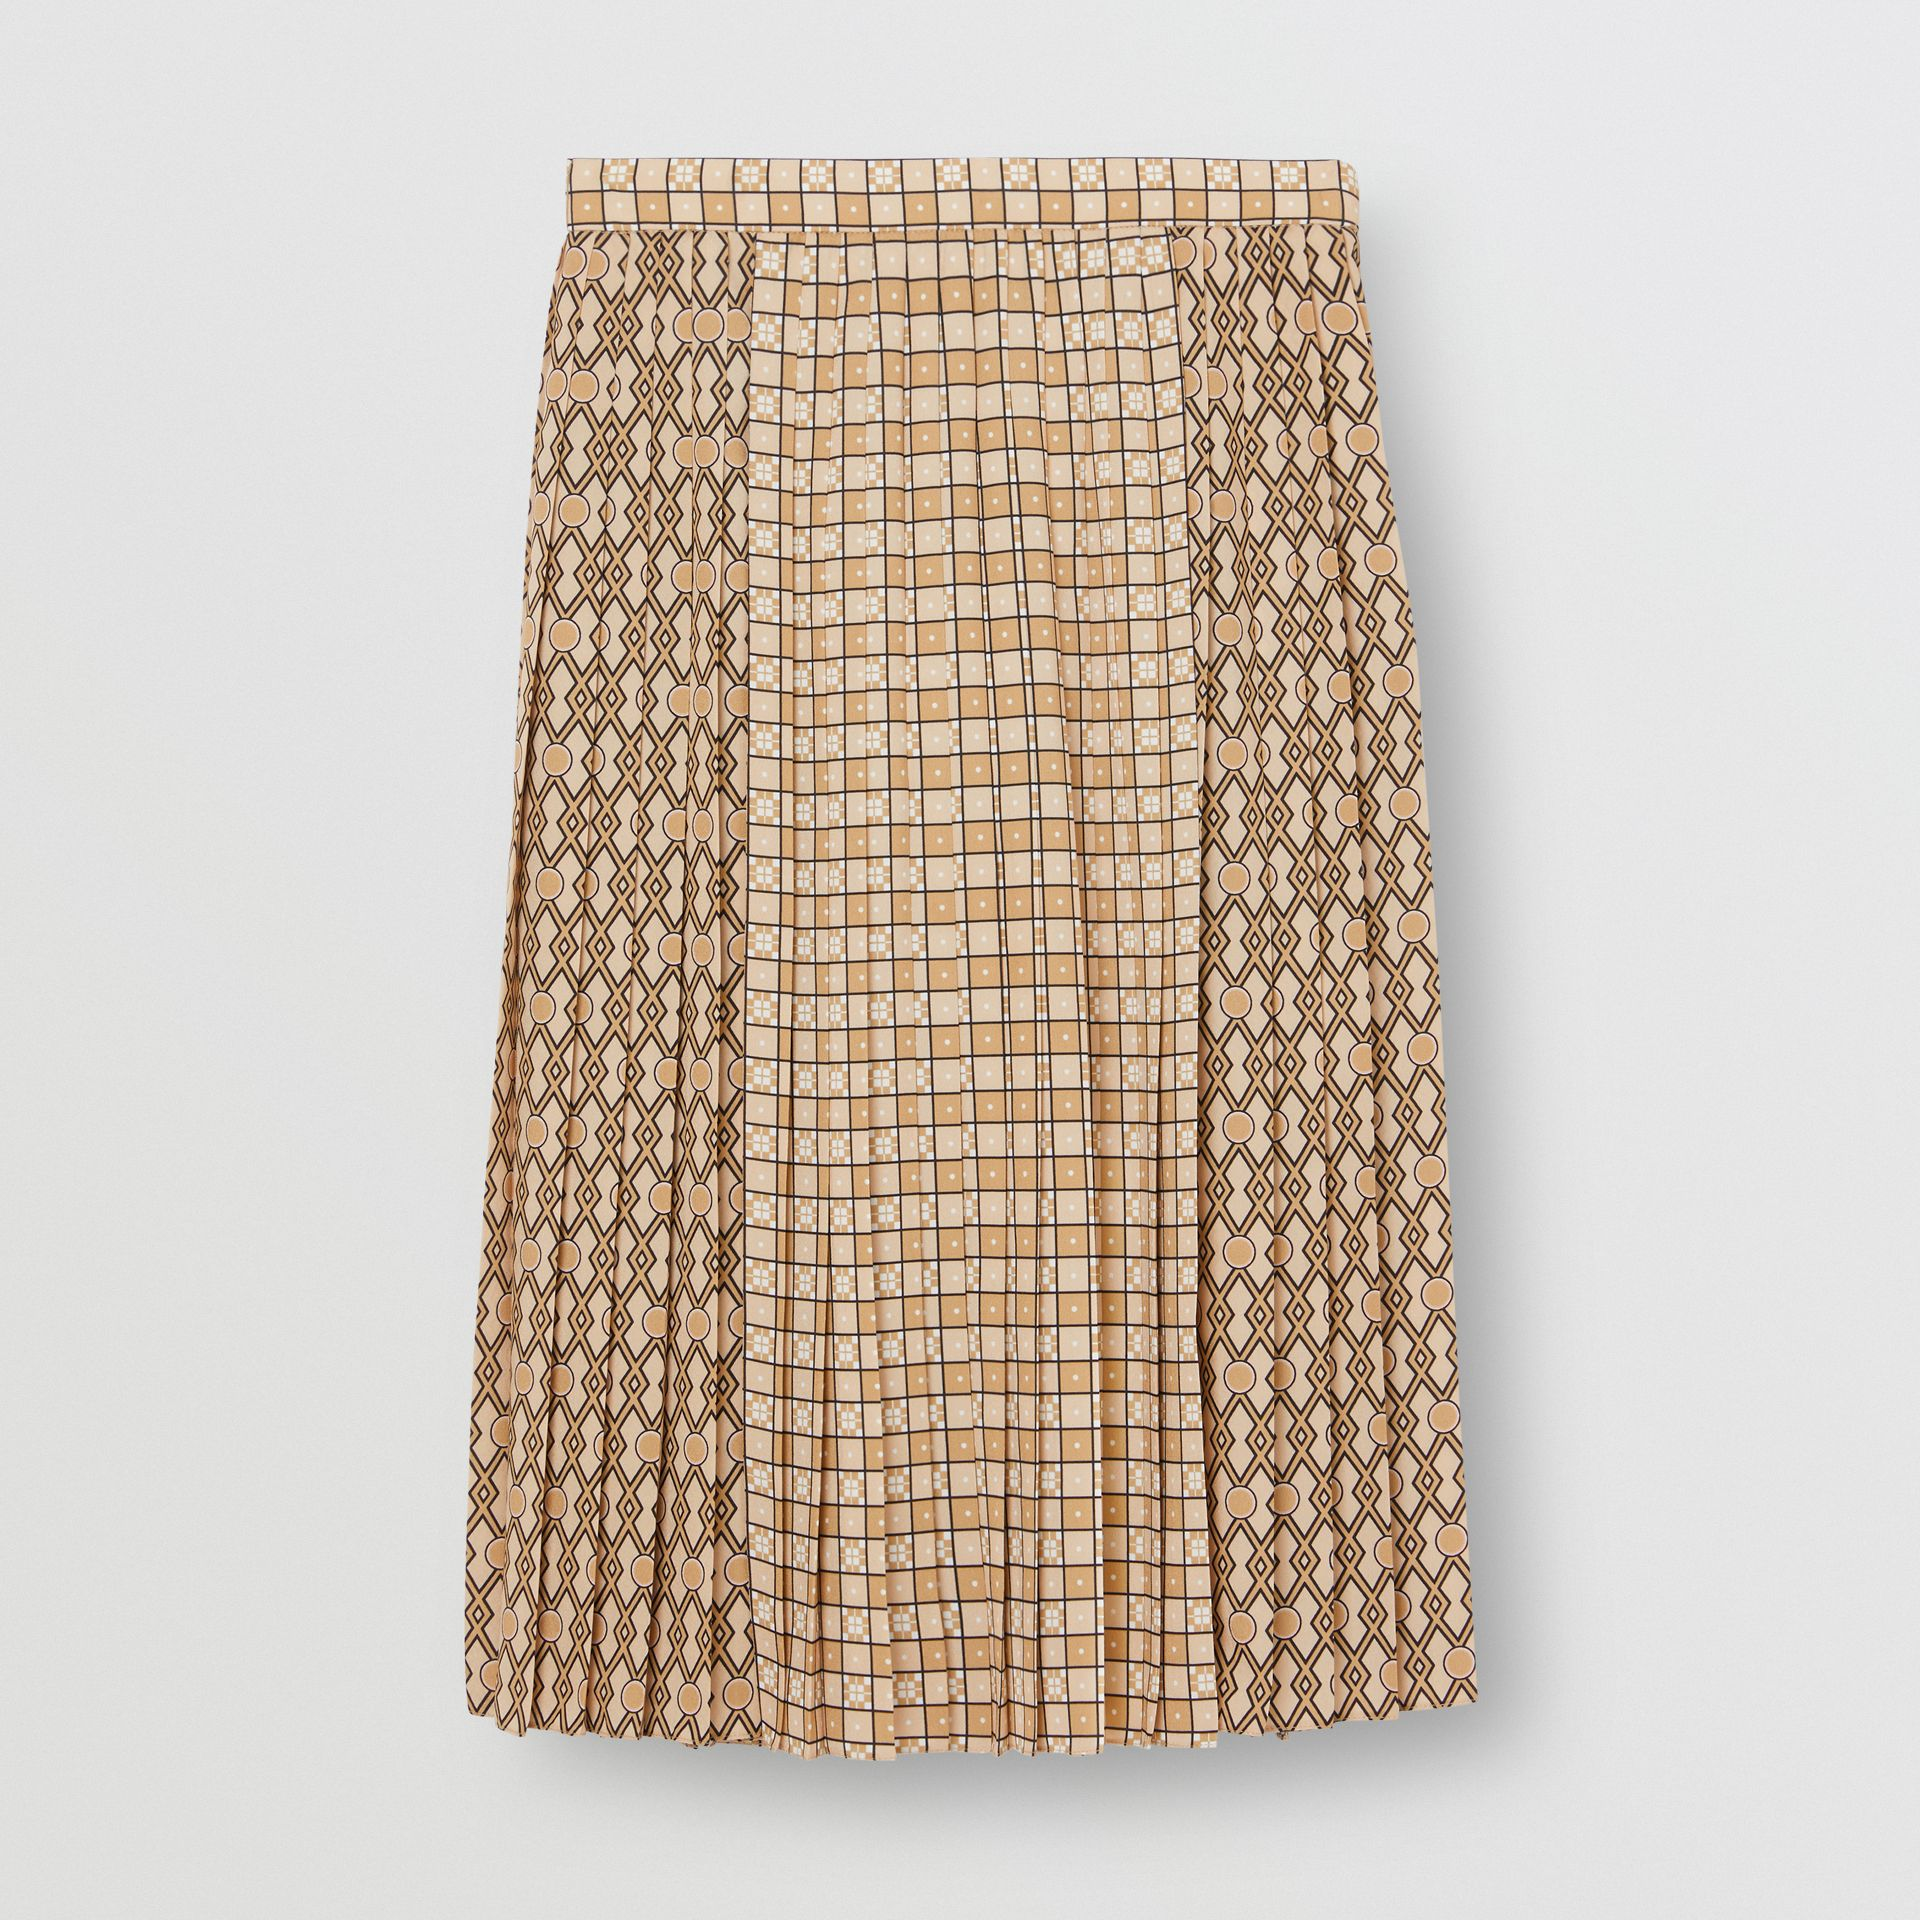 Contrast Graphic Print Pleated Skirt in Latte - Women | Burberry - gallery image 3